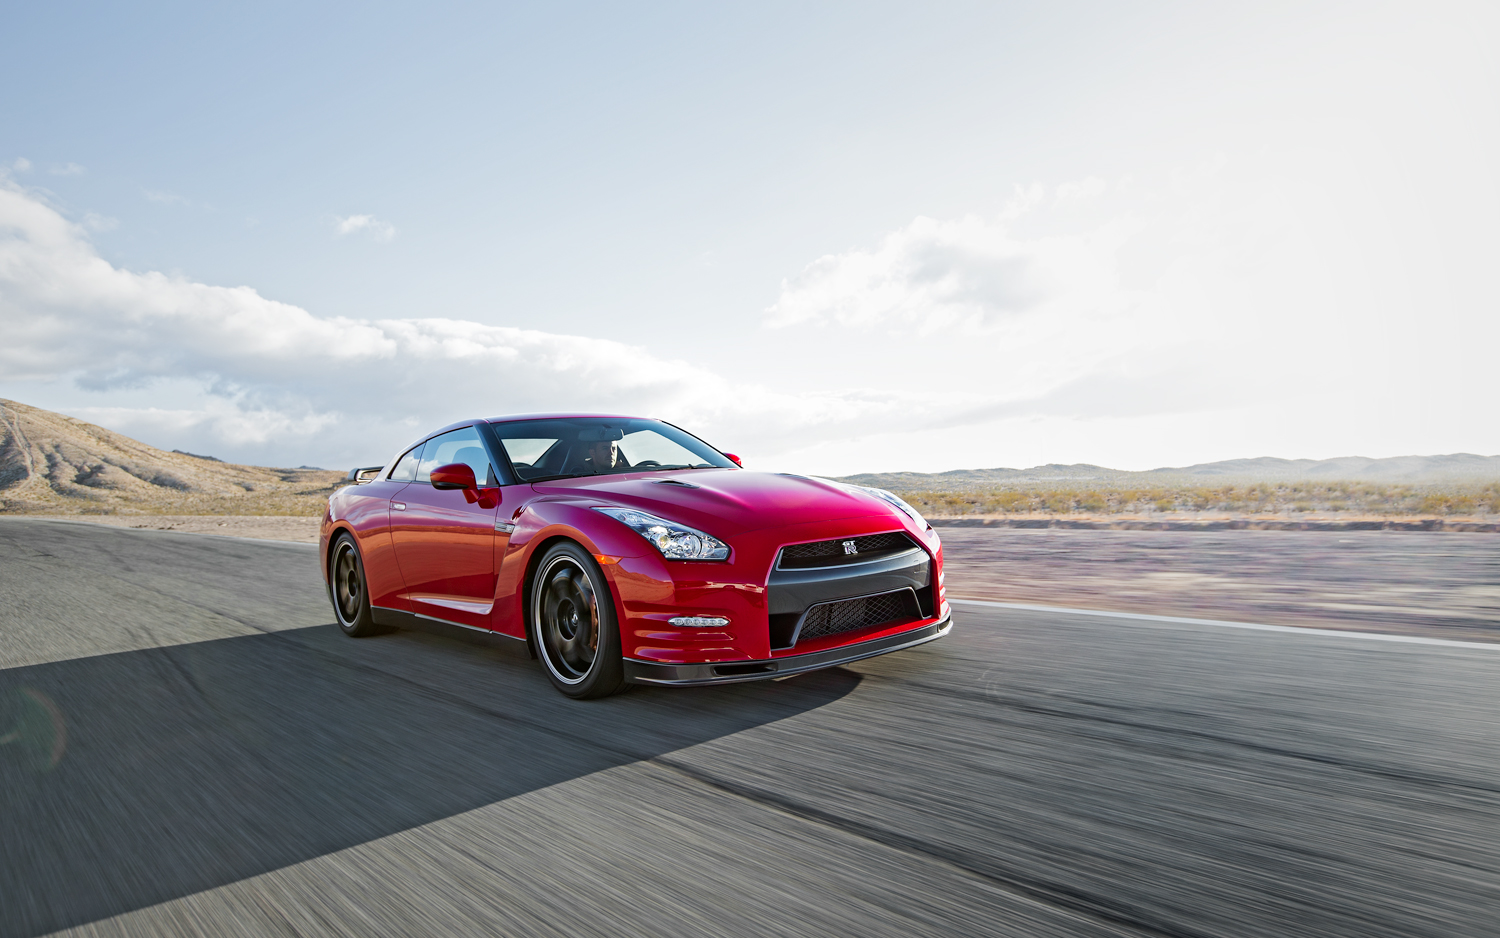 Nissan gt-r track edition engineered by nismo (2016) review | car.